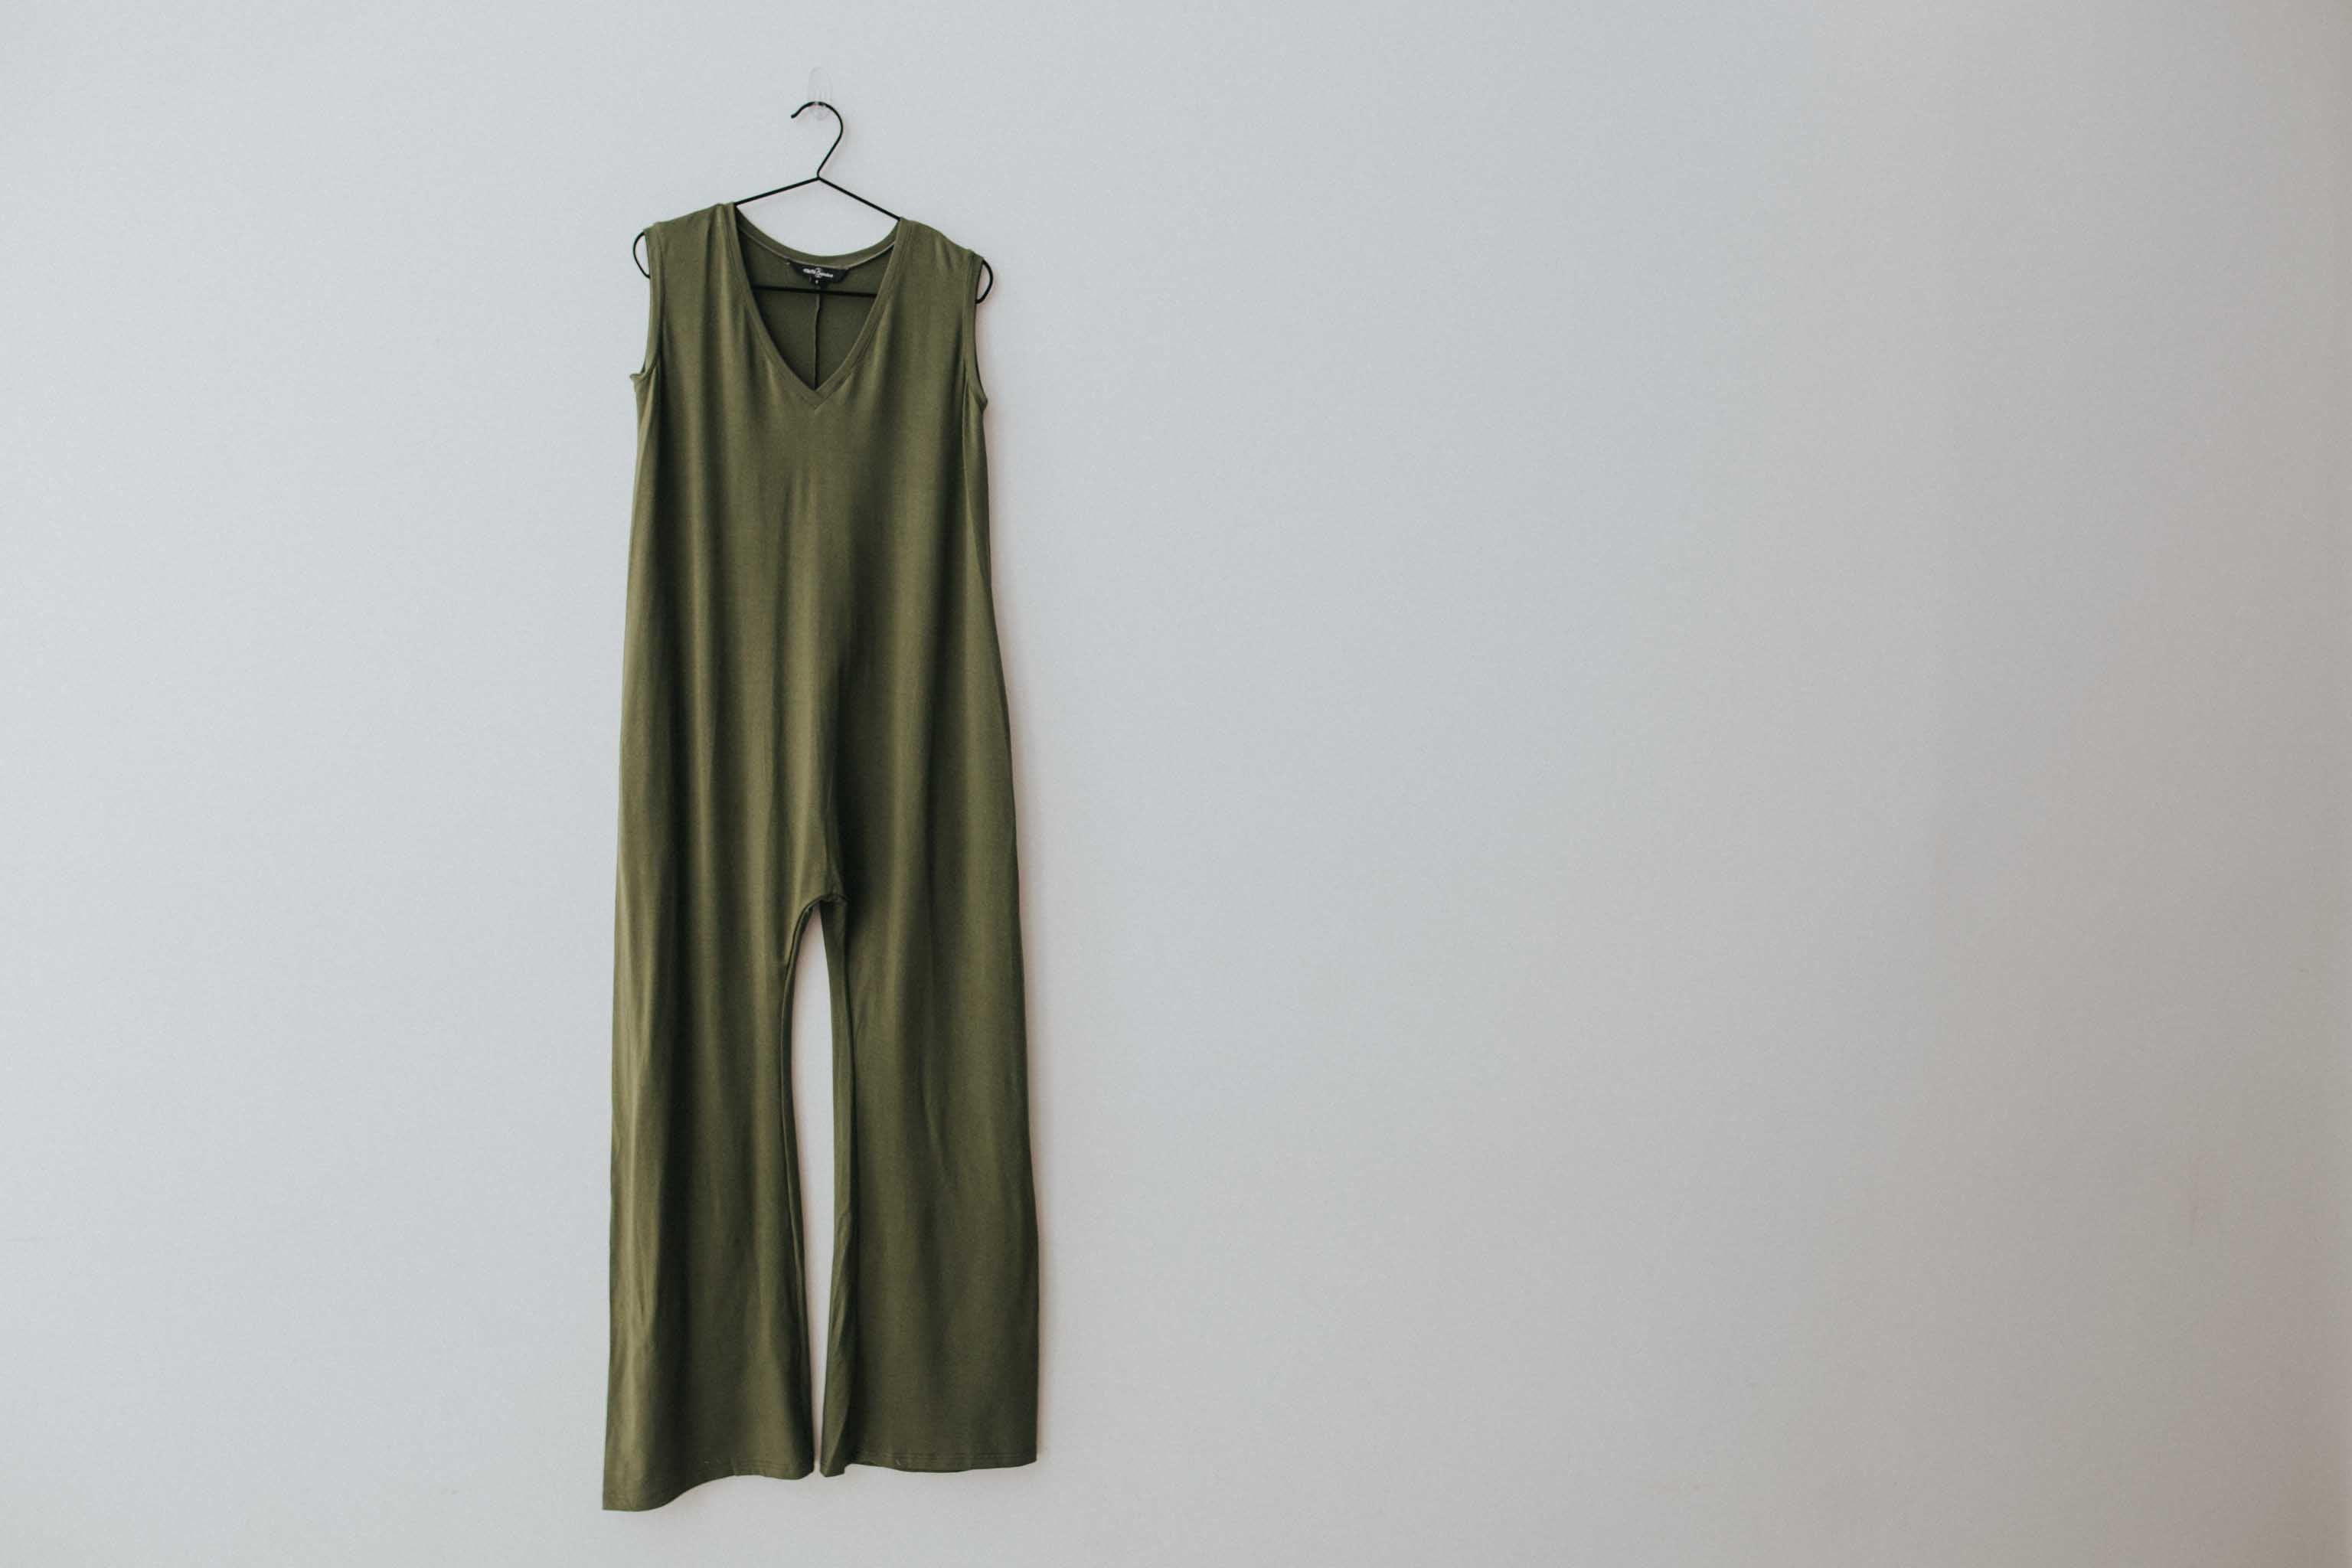 The Sleeveless Romper in Olive